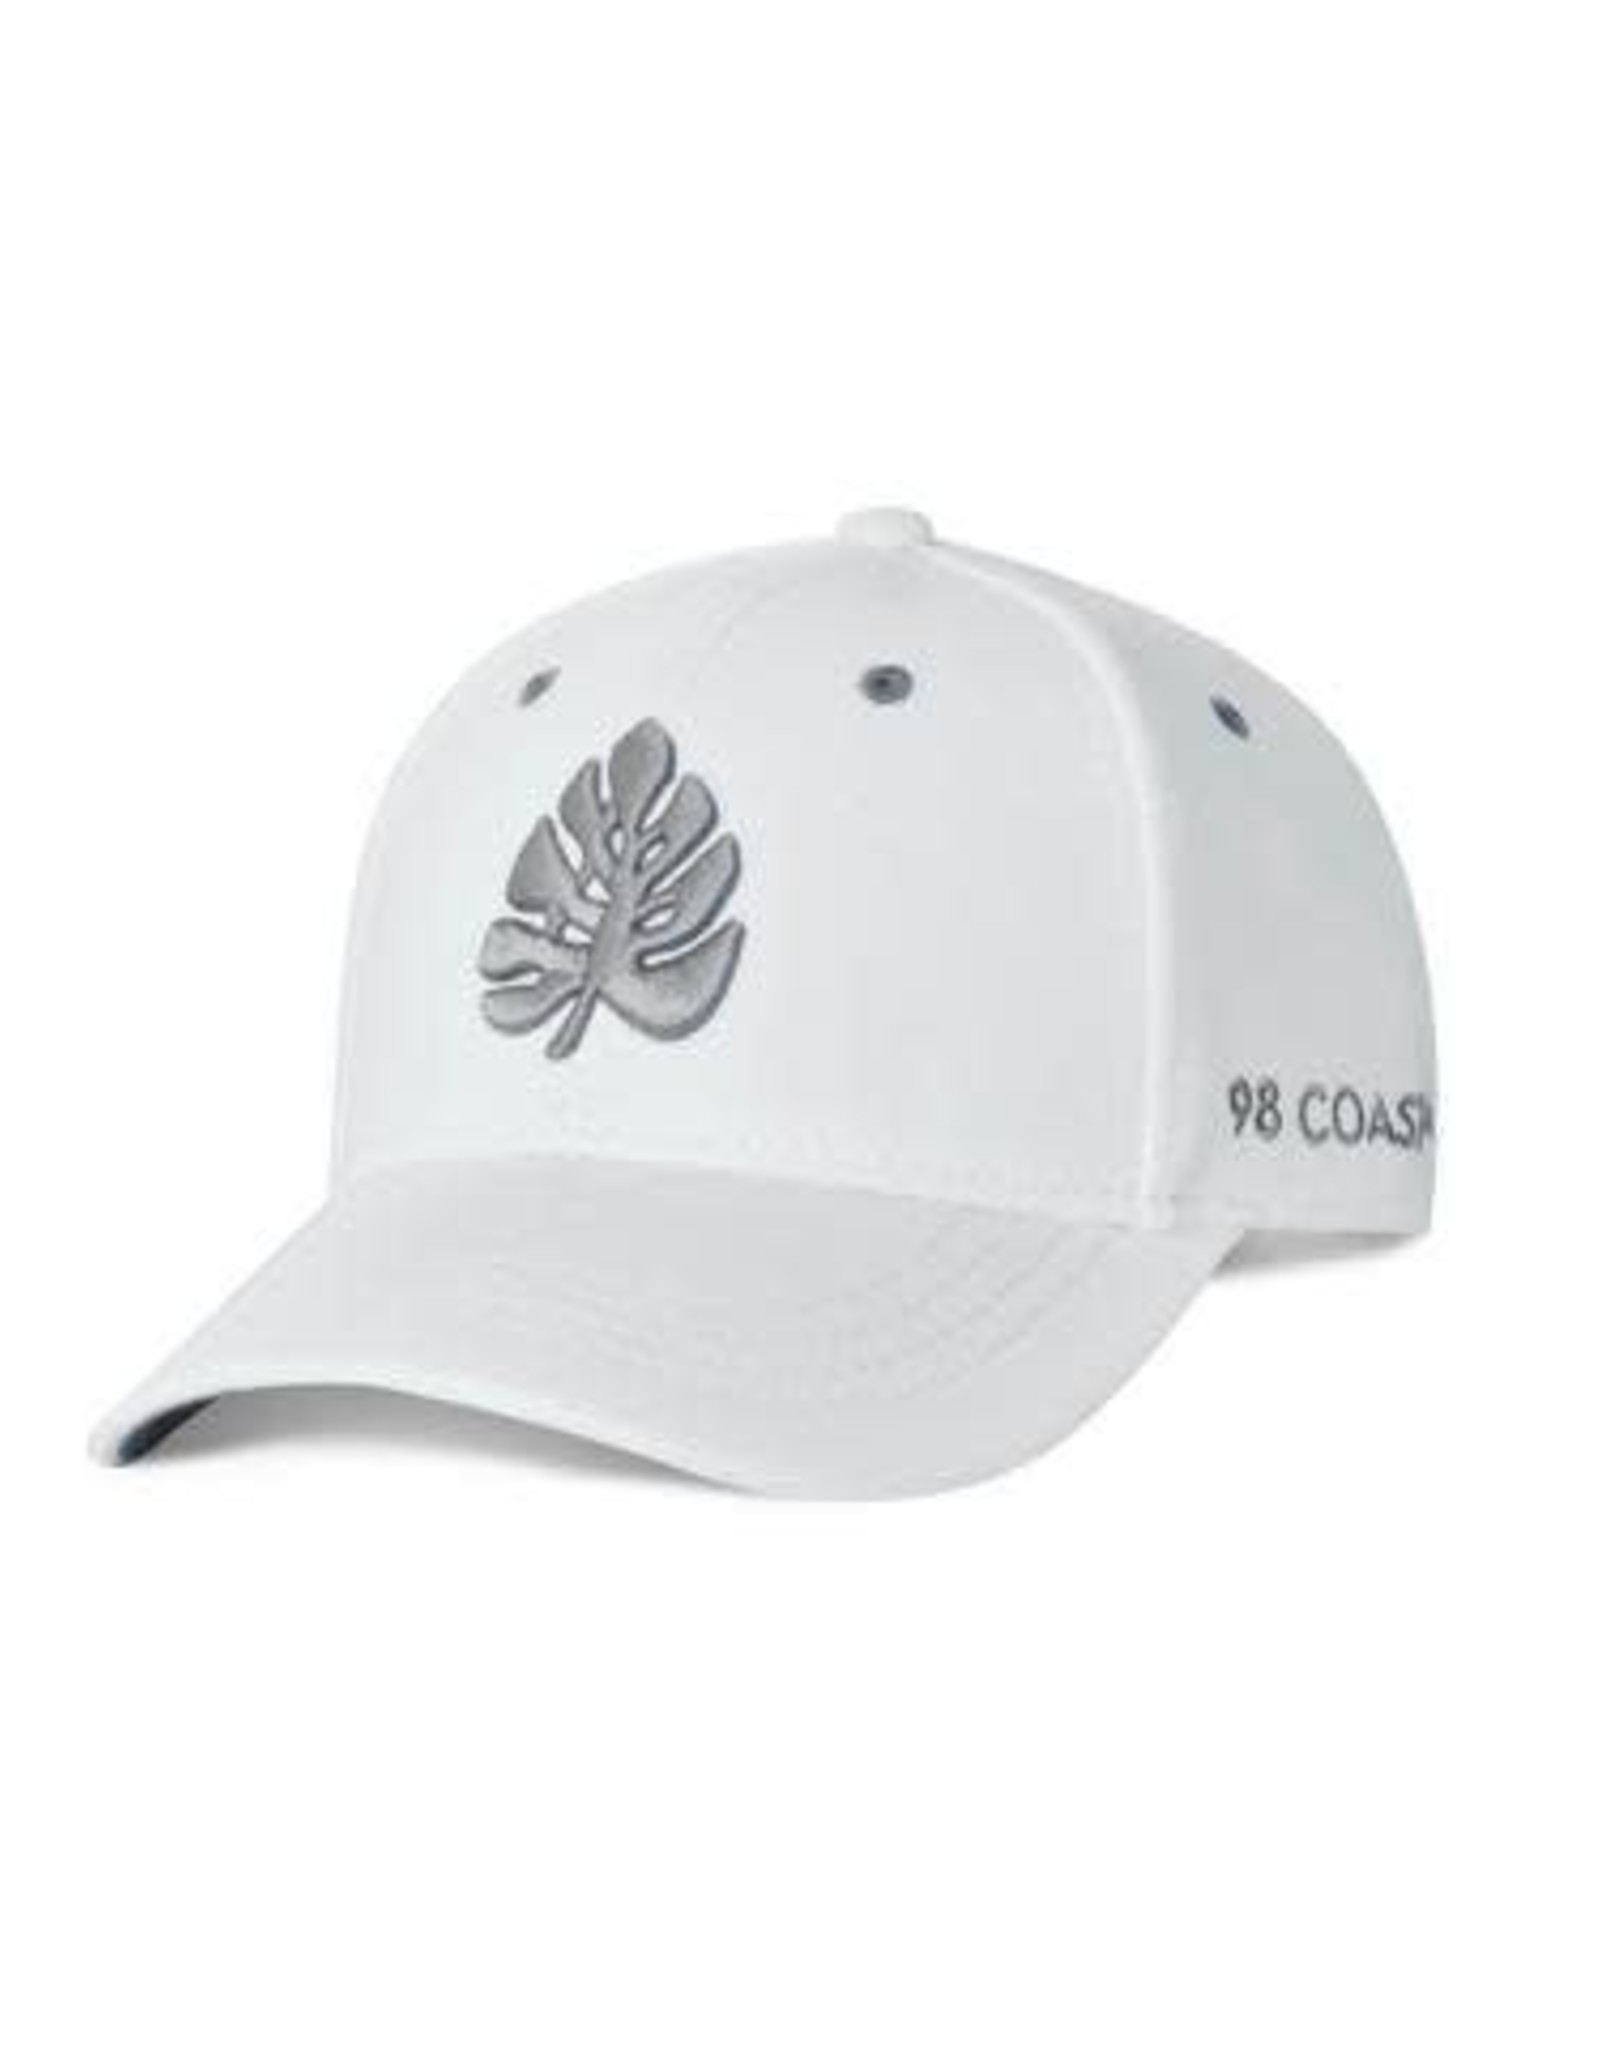 GORRA ADULTO, 98 COAST